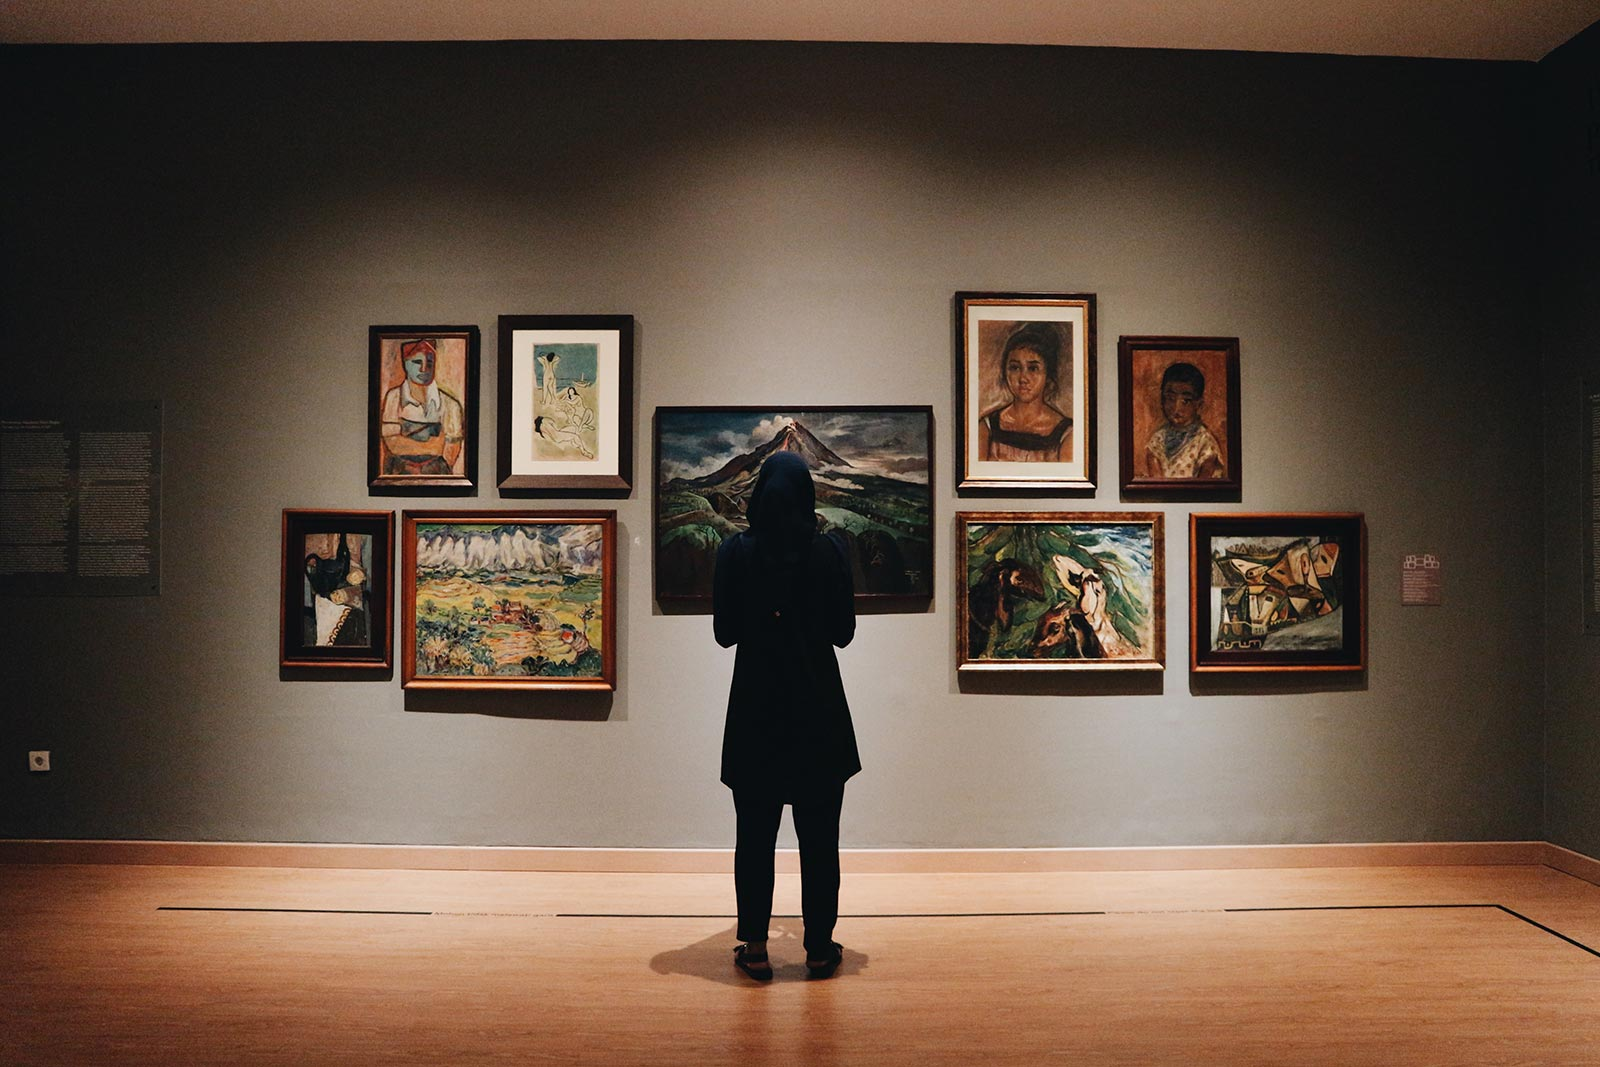 Art gallery with visitor viewing artworks